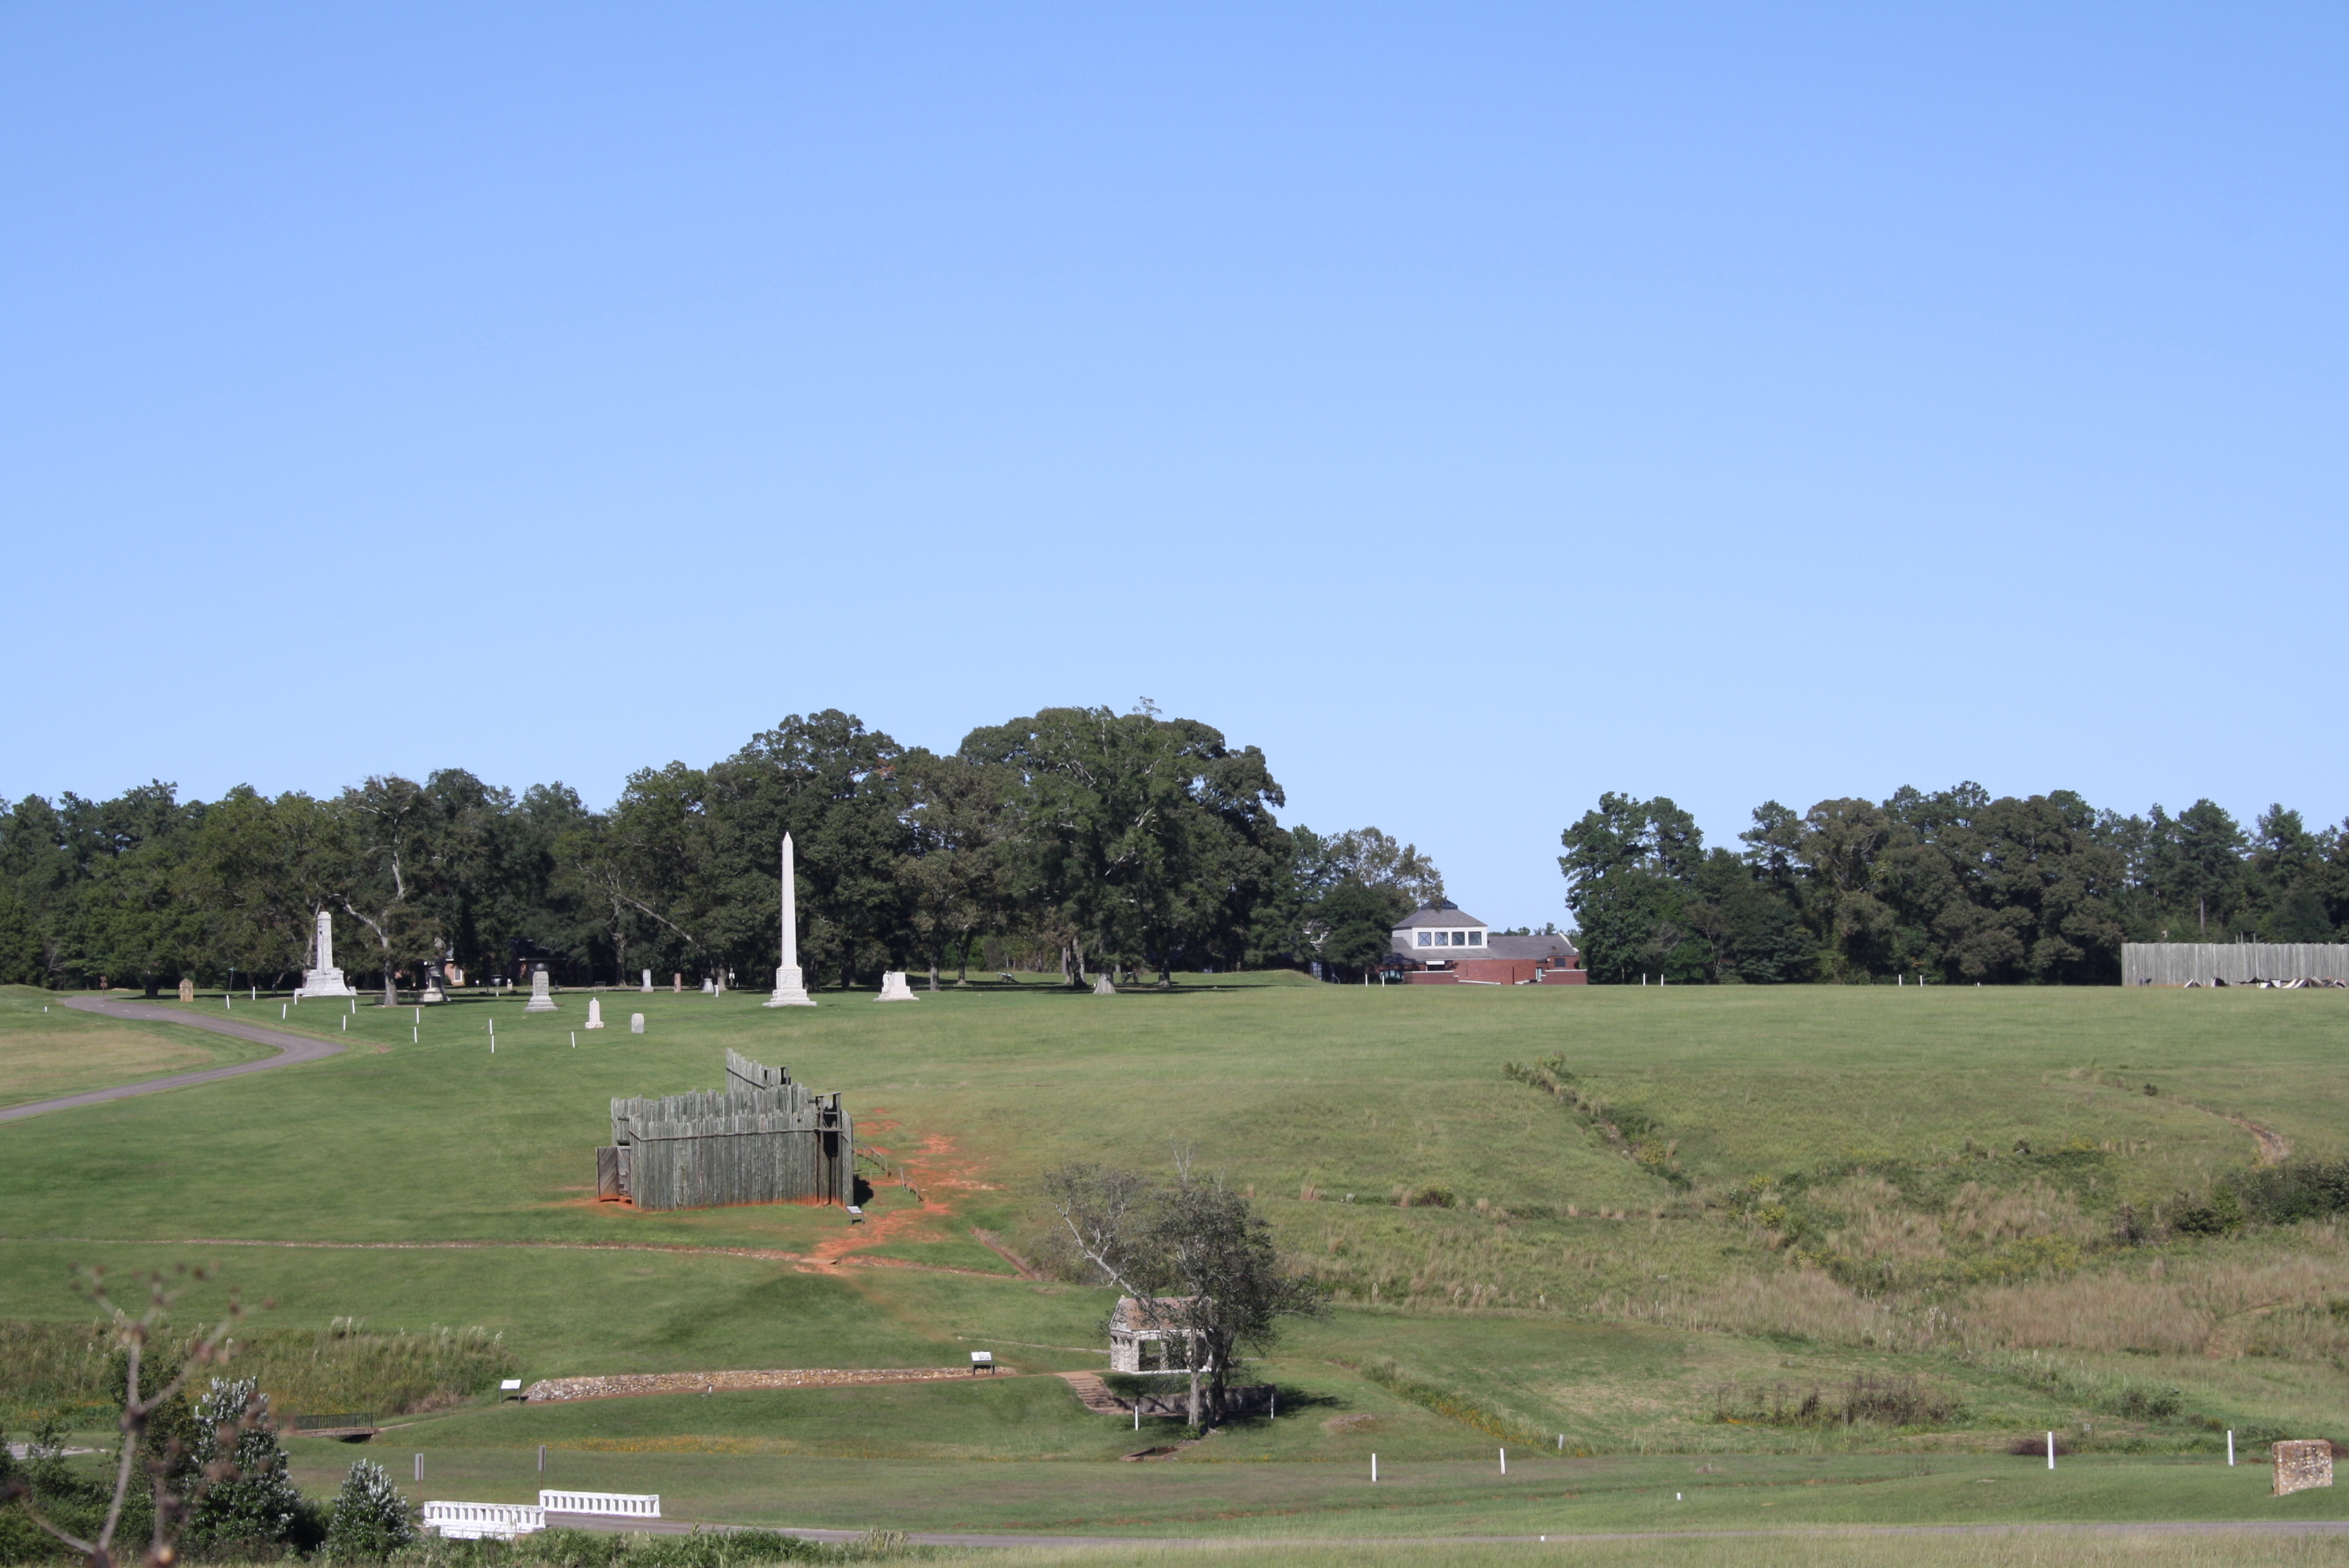 The prison site at Andersonville is adjacent to the National Prisoner of War Museum (shown in the background) and about one-third of a mile from the national cemetery (not shown). Andersonville National Historic Site